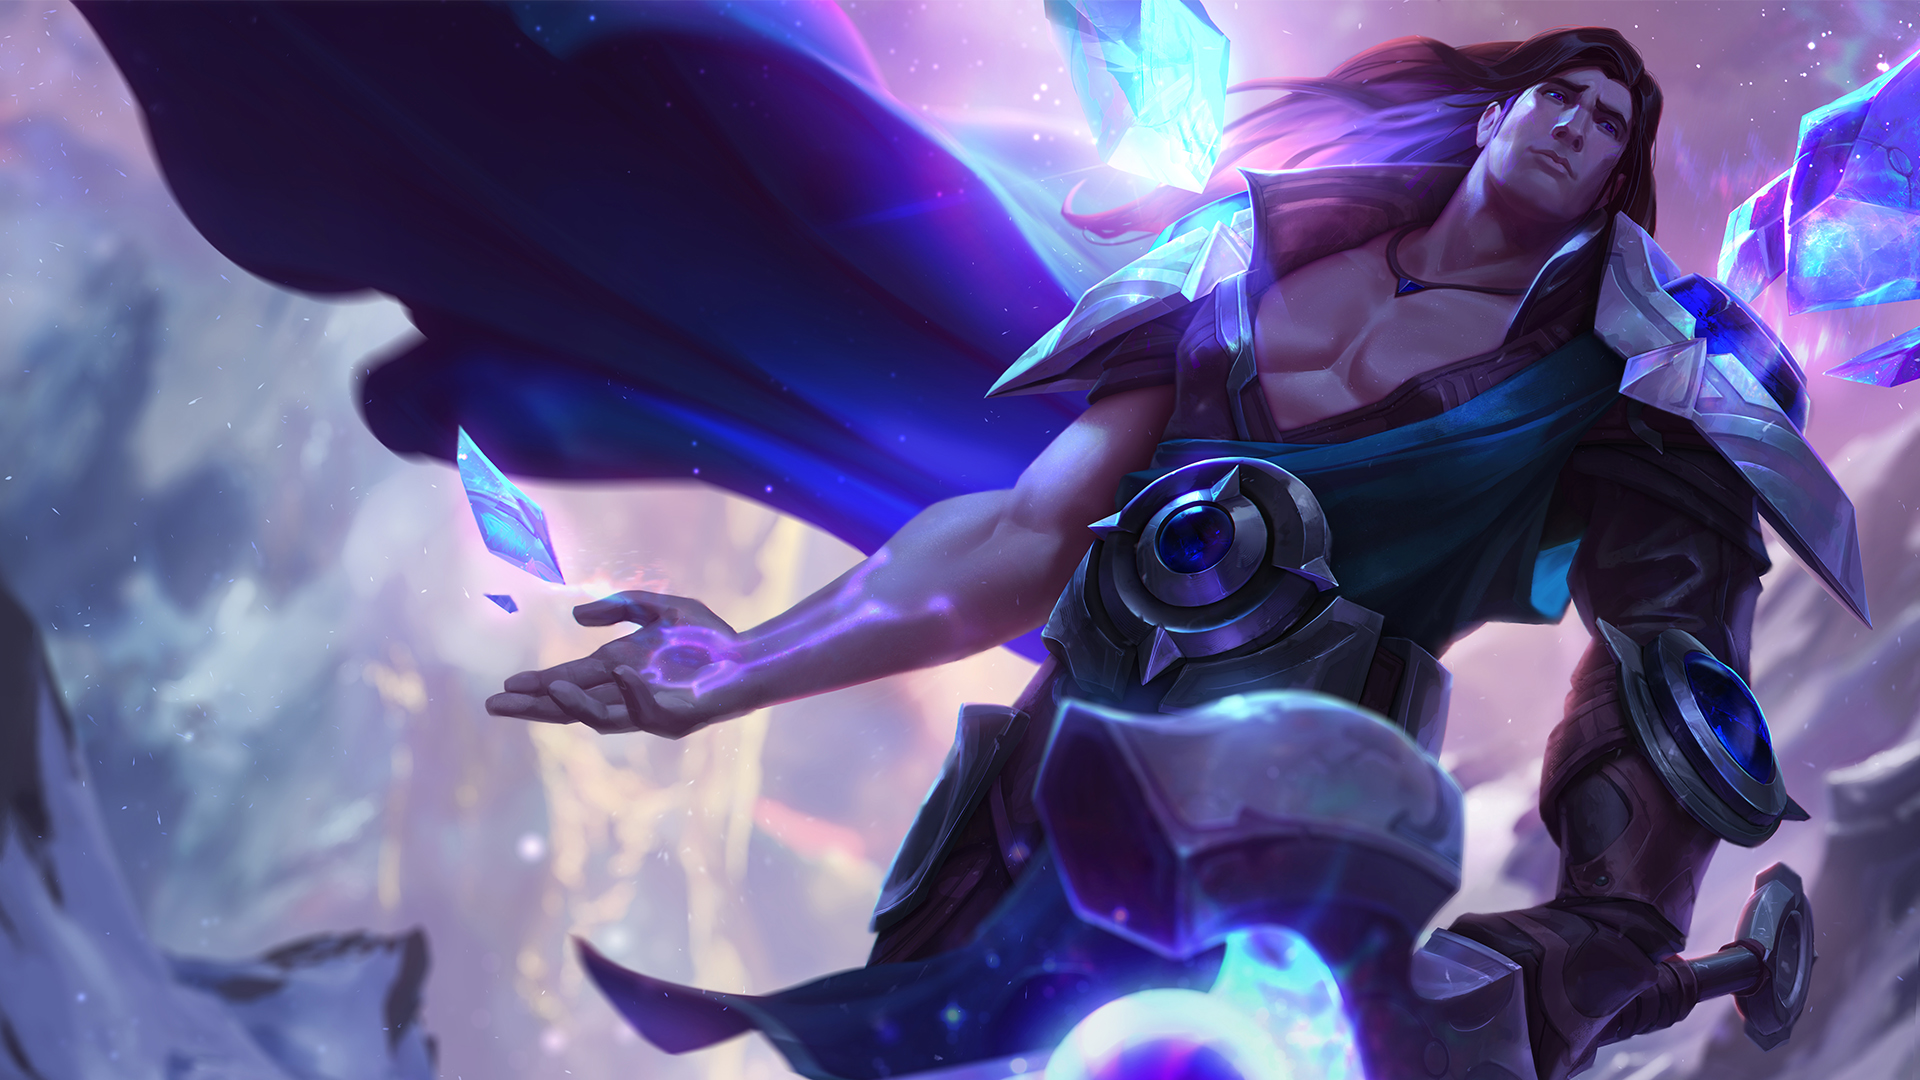 League of Legends Taric ascends to the stars in new rework PC Gamer 1920x1080